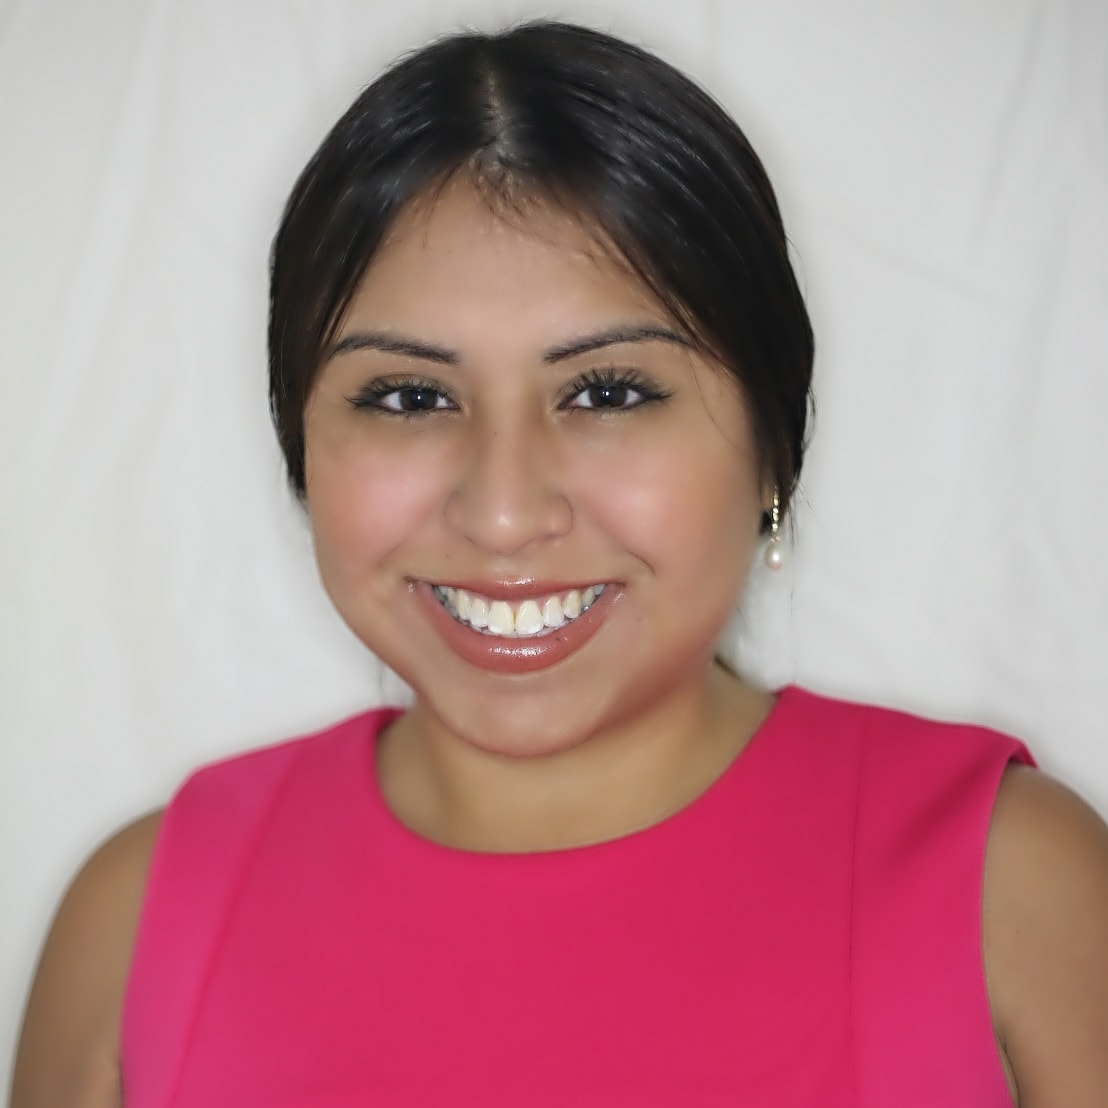 About the Writer: - Christine Bolaños is a Salvadoran-American journalist based in Texas who writes about social justice, women's empowerment and Latino issues for numerous national media outlets.